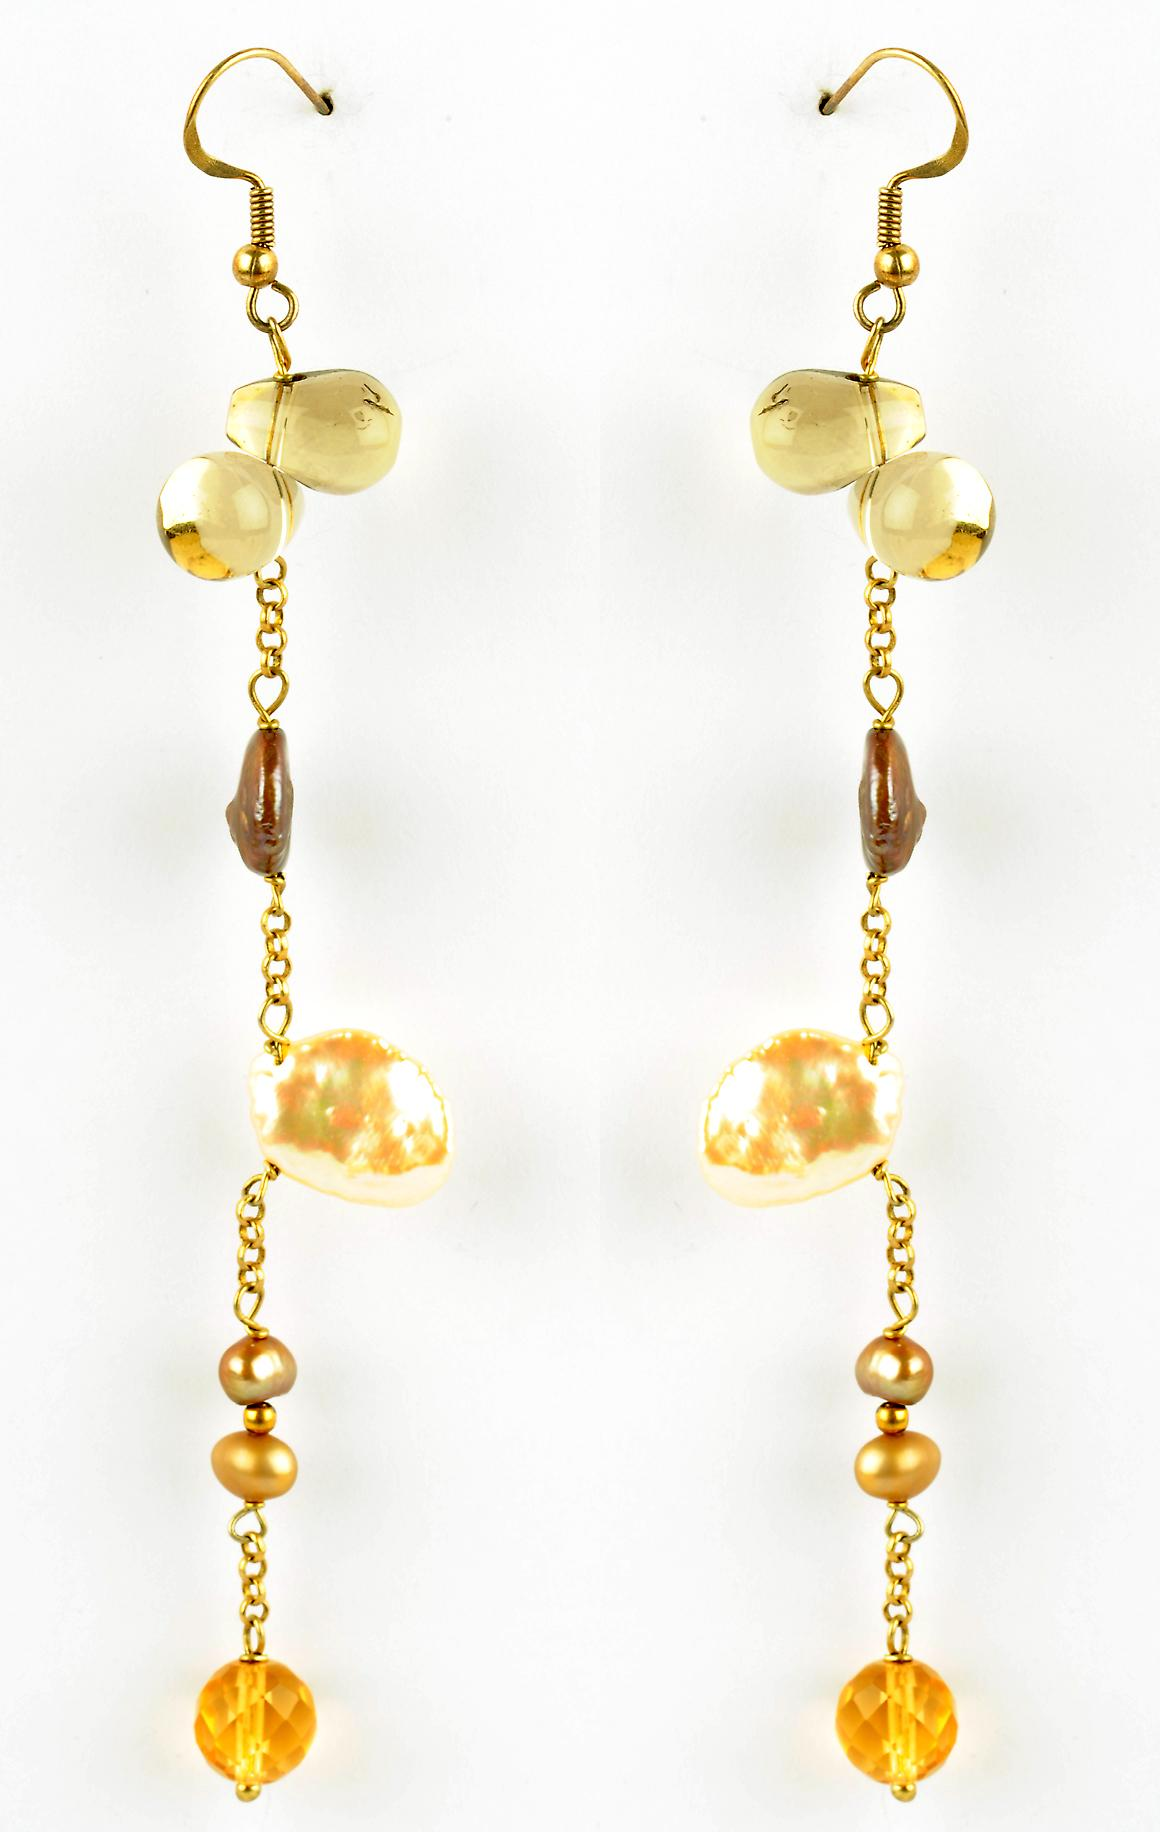 Waooh - Fashion Jewellery - WJ0778 - On Ear Earrings with Semi Precious Stone Rhinestone Swarovski- - Frame Colour GOLD